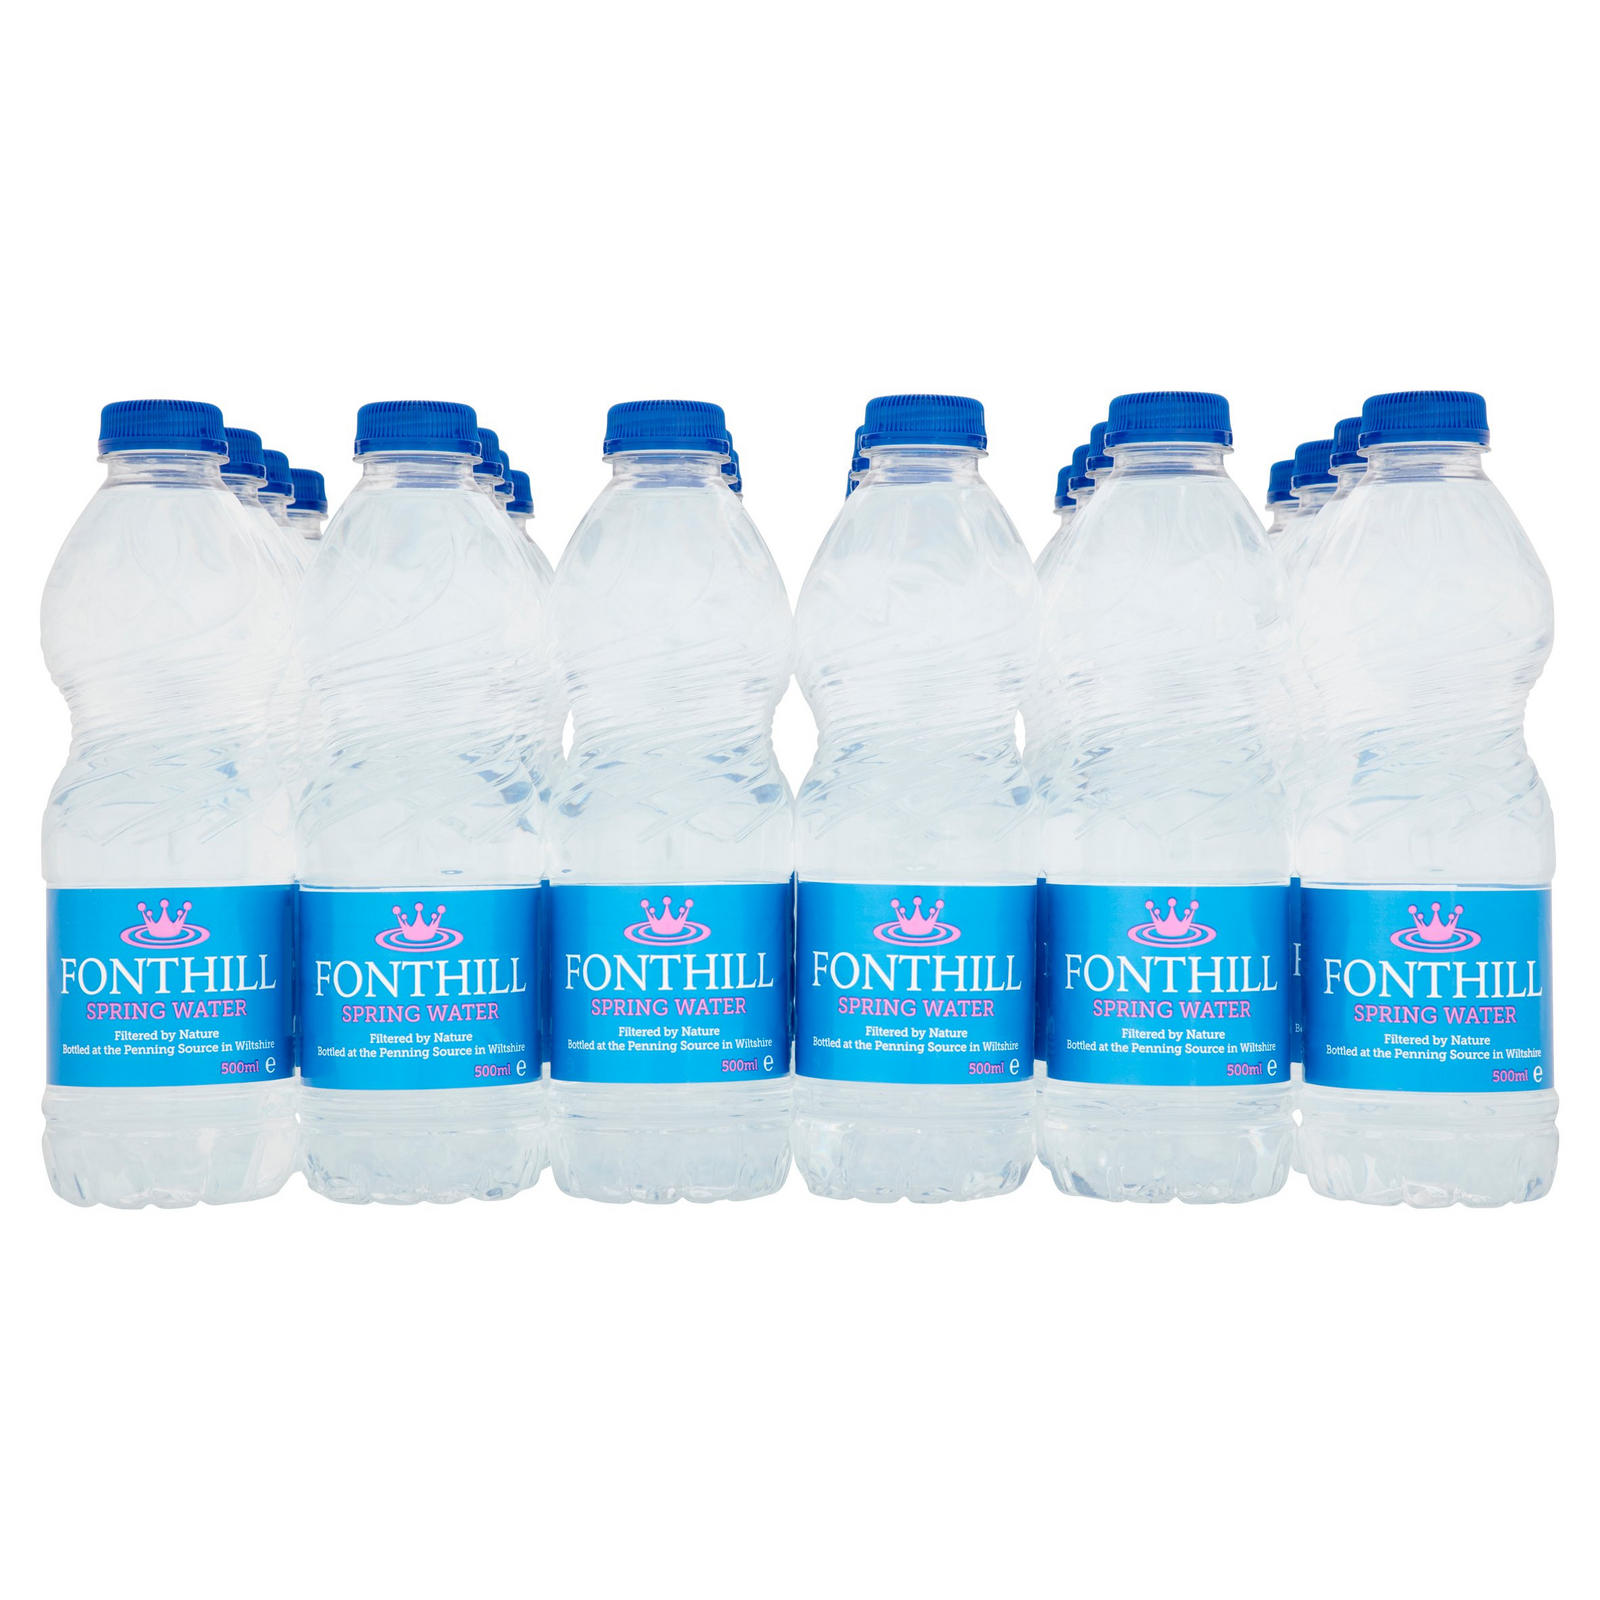 Fonthill Spring Water 500ml   Iceland Foods